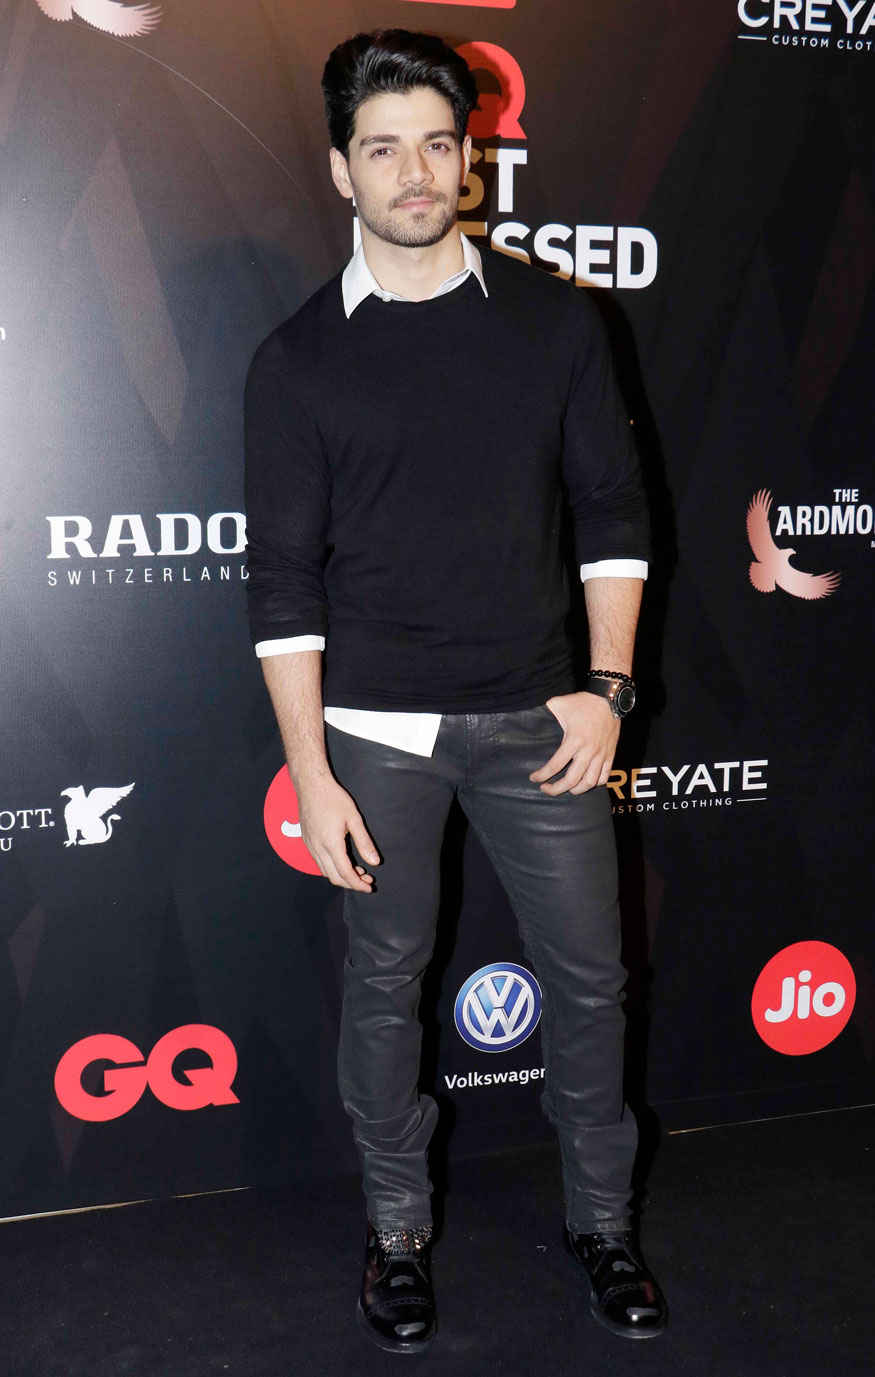 Sooraj Pancholi Attends The GQ Best Dressed Awards Event